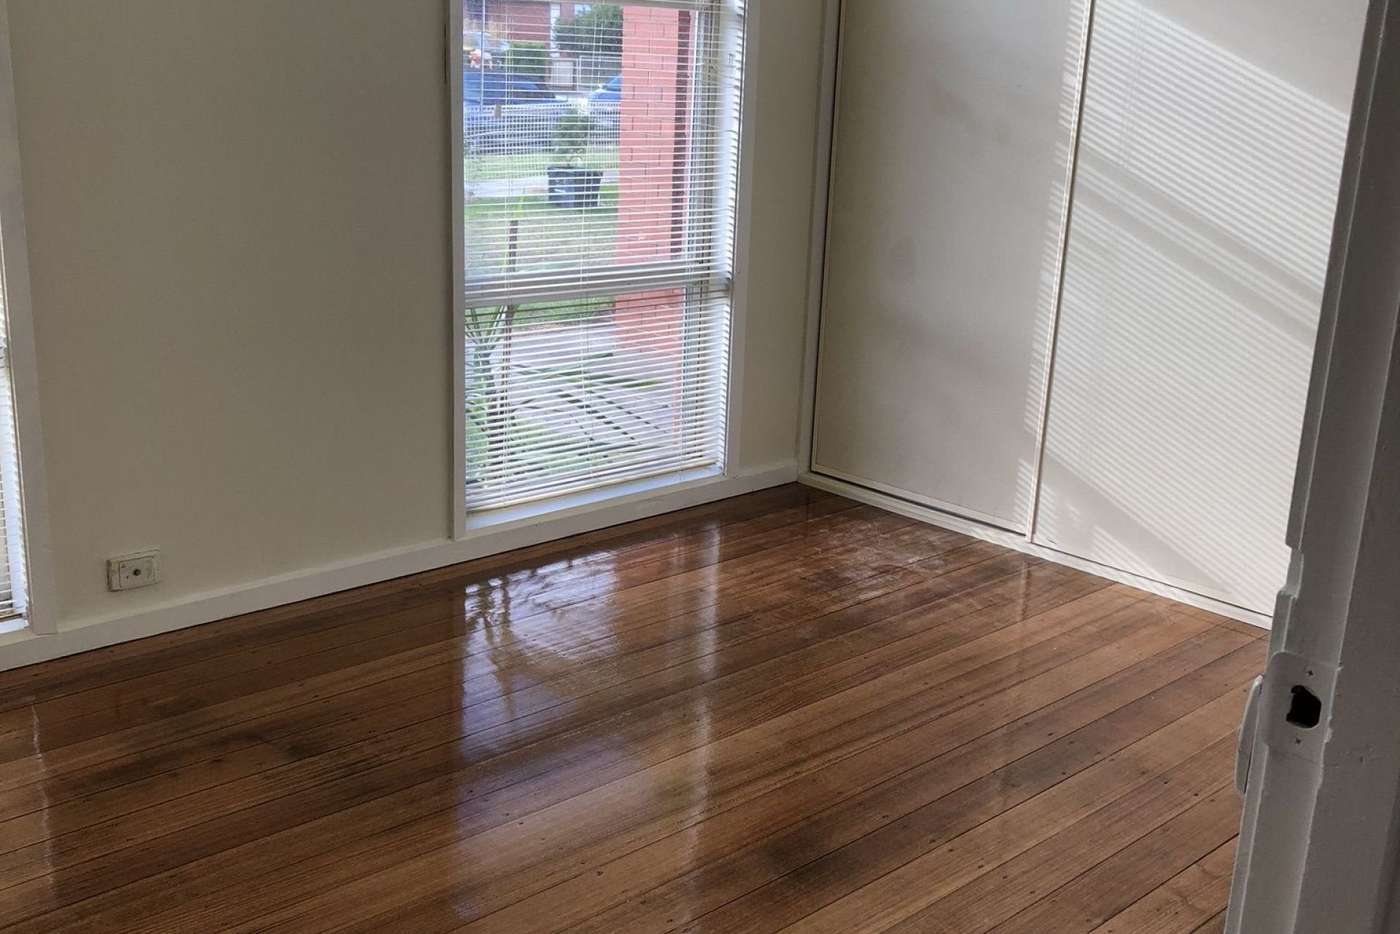 Sixth view of Homely house listing, 22 Bennett St, Sunshine West VIC 3020